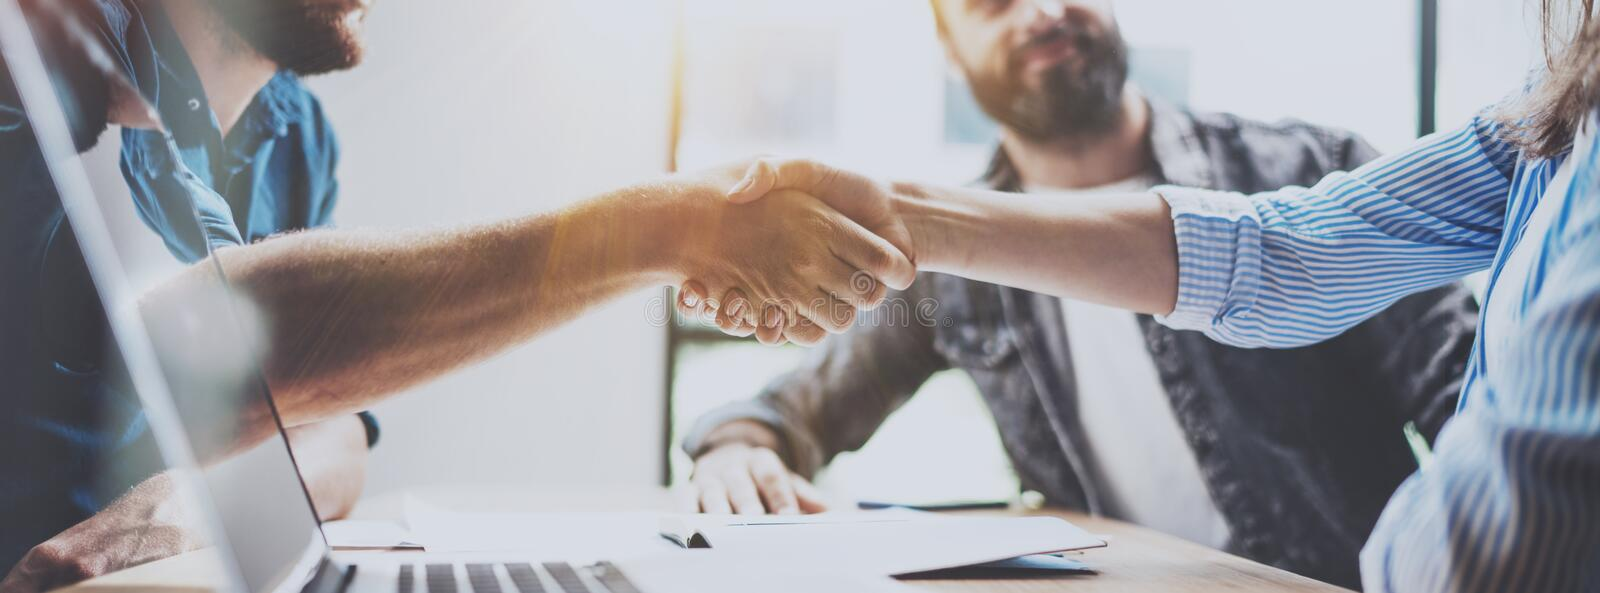 Business partnership handshake concept. Photo two coworkers handshaking process. Successful deal after great meeting stock images